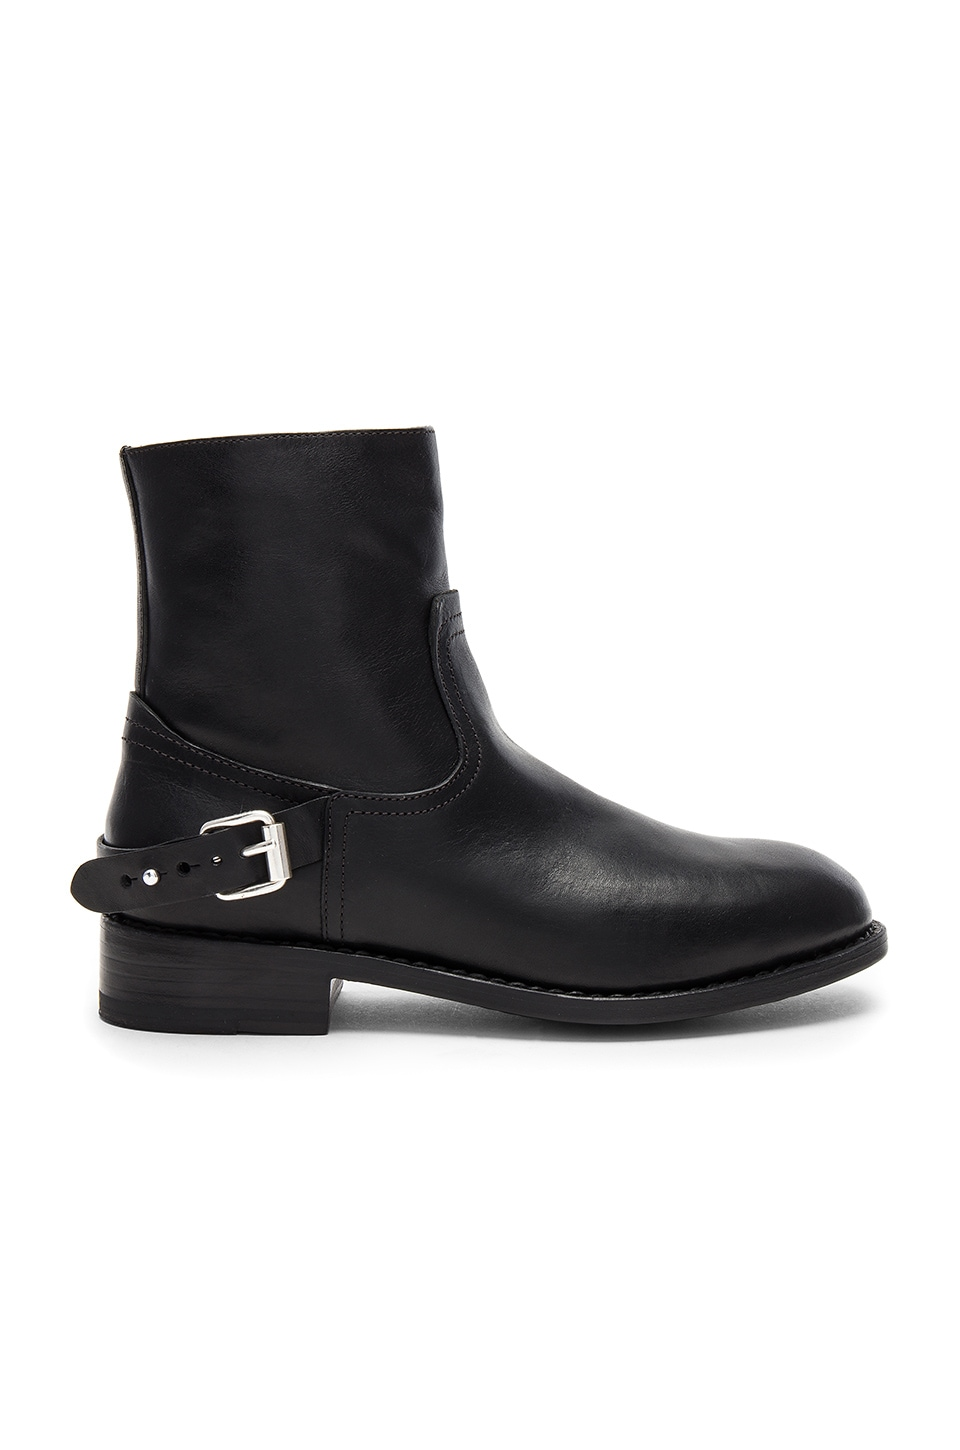 Oliver Zip Boot by Rag & Bone